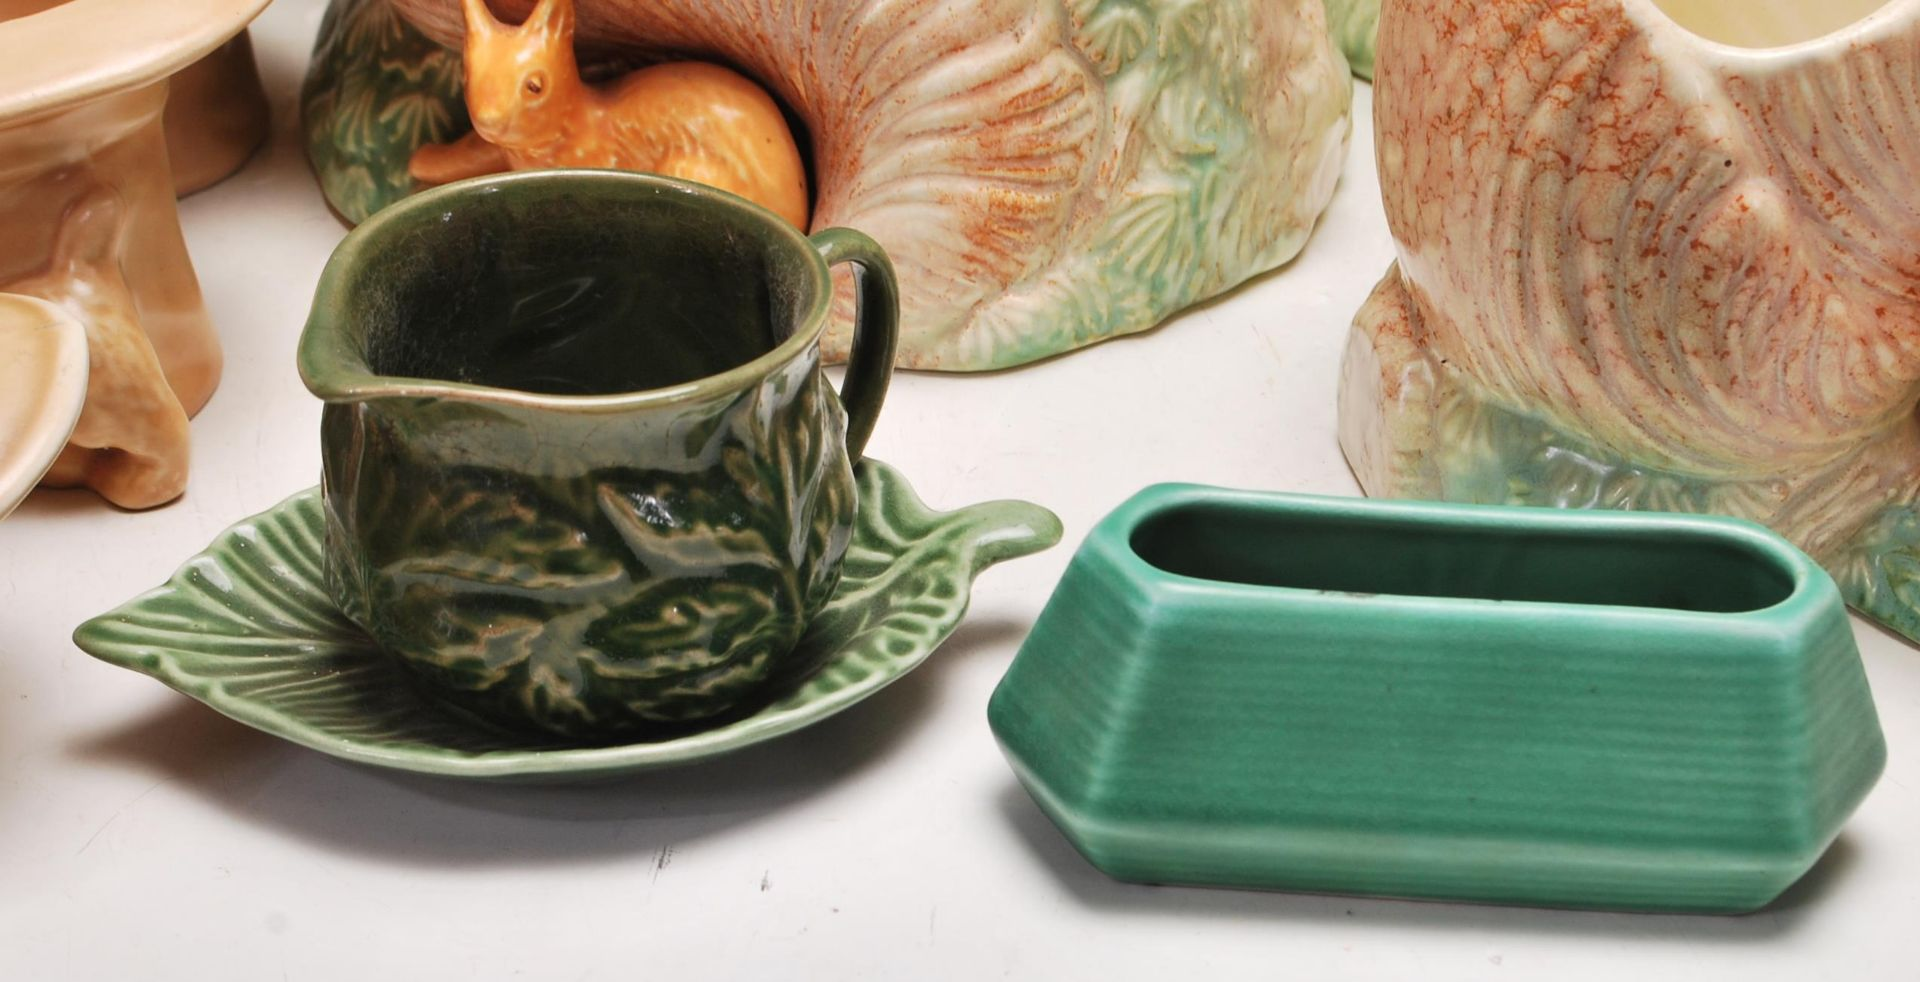 COLLECTION OF VINTAGE MID 20TH CENTURY SYLVAC CERAMIC POTTERY - Image 4 of 13